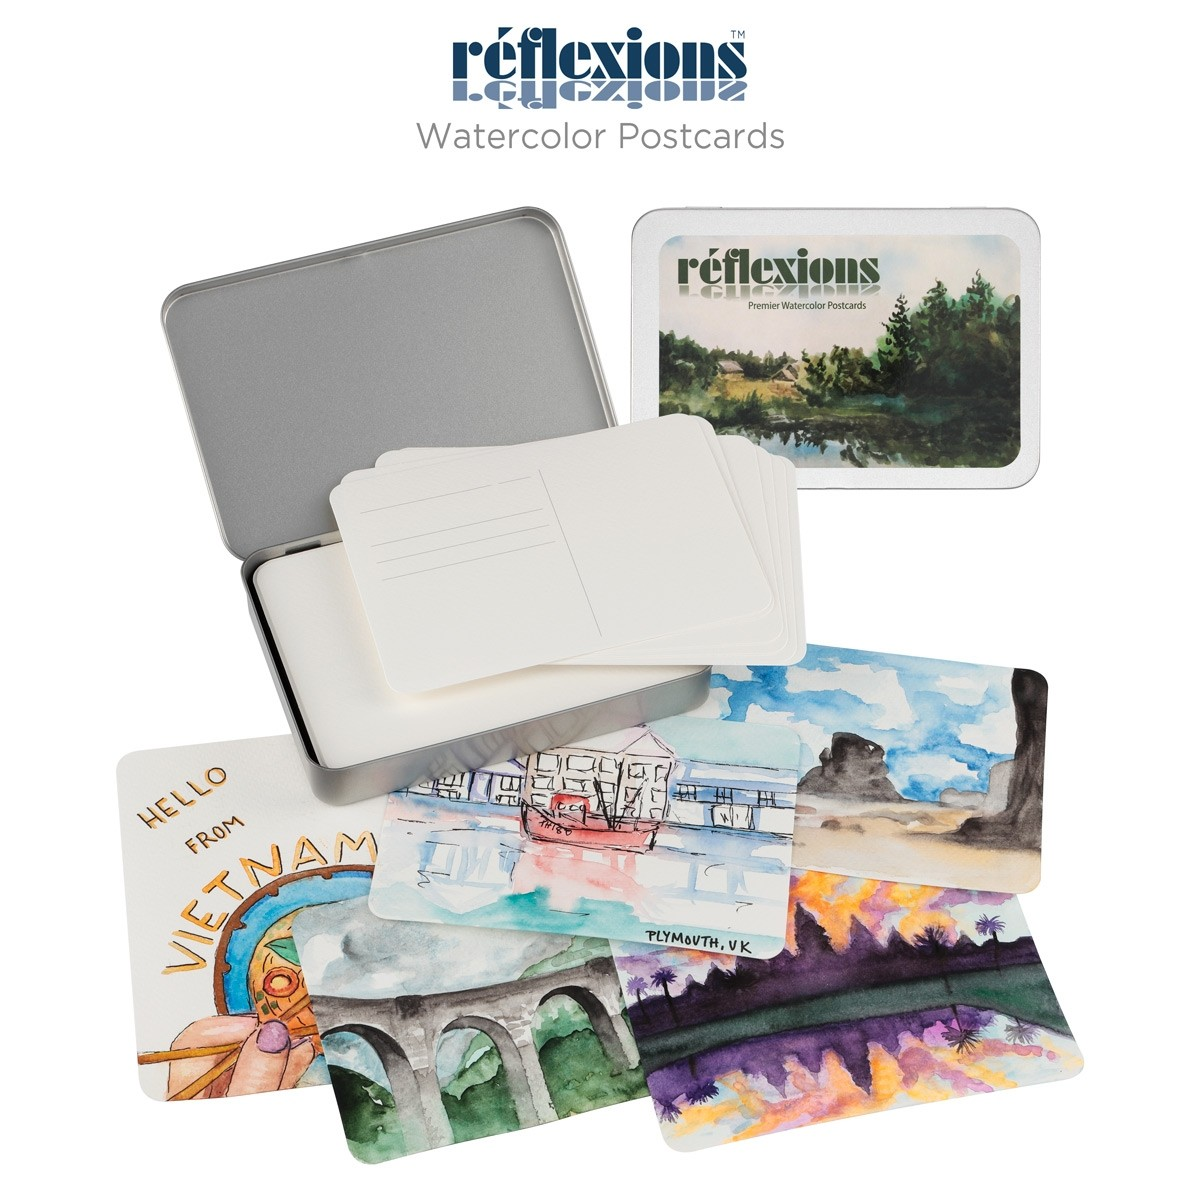 Reflexions Watercolor Postcards